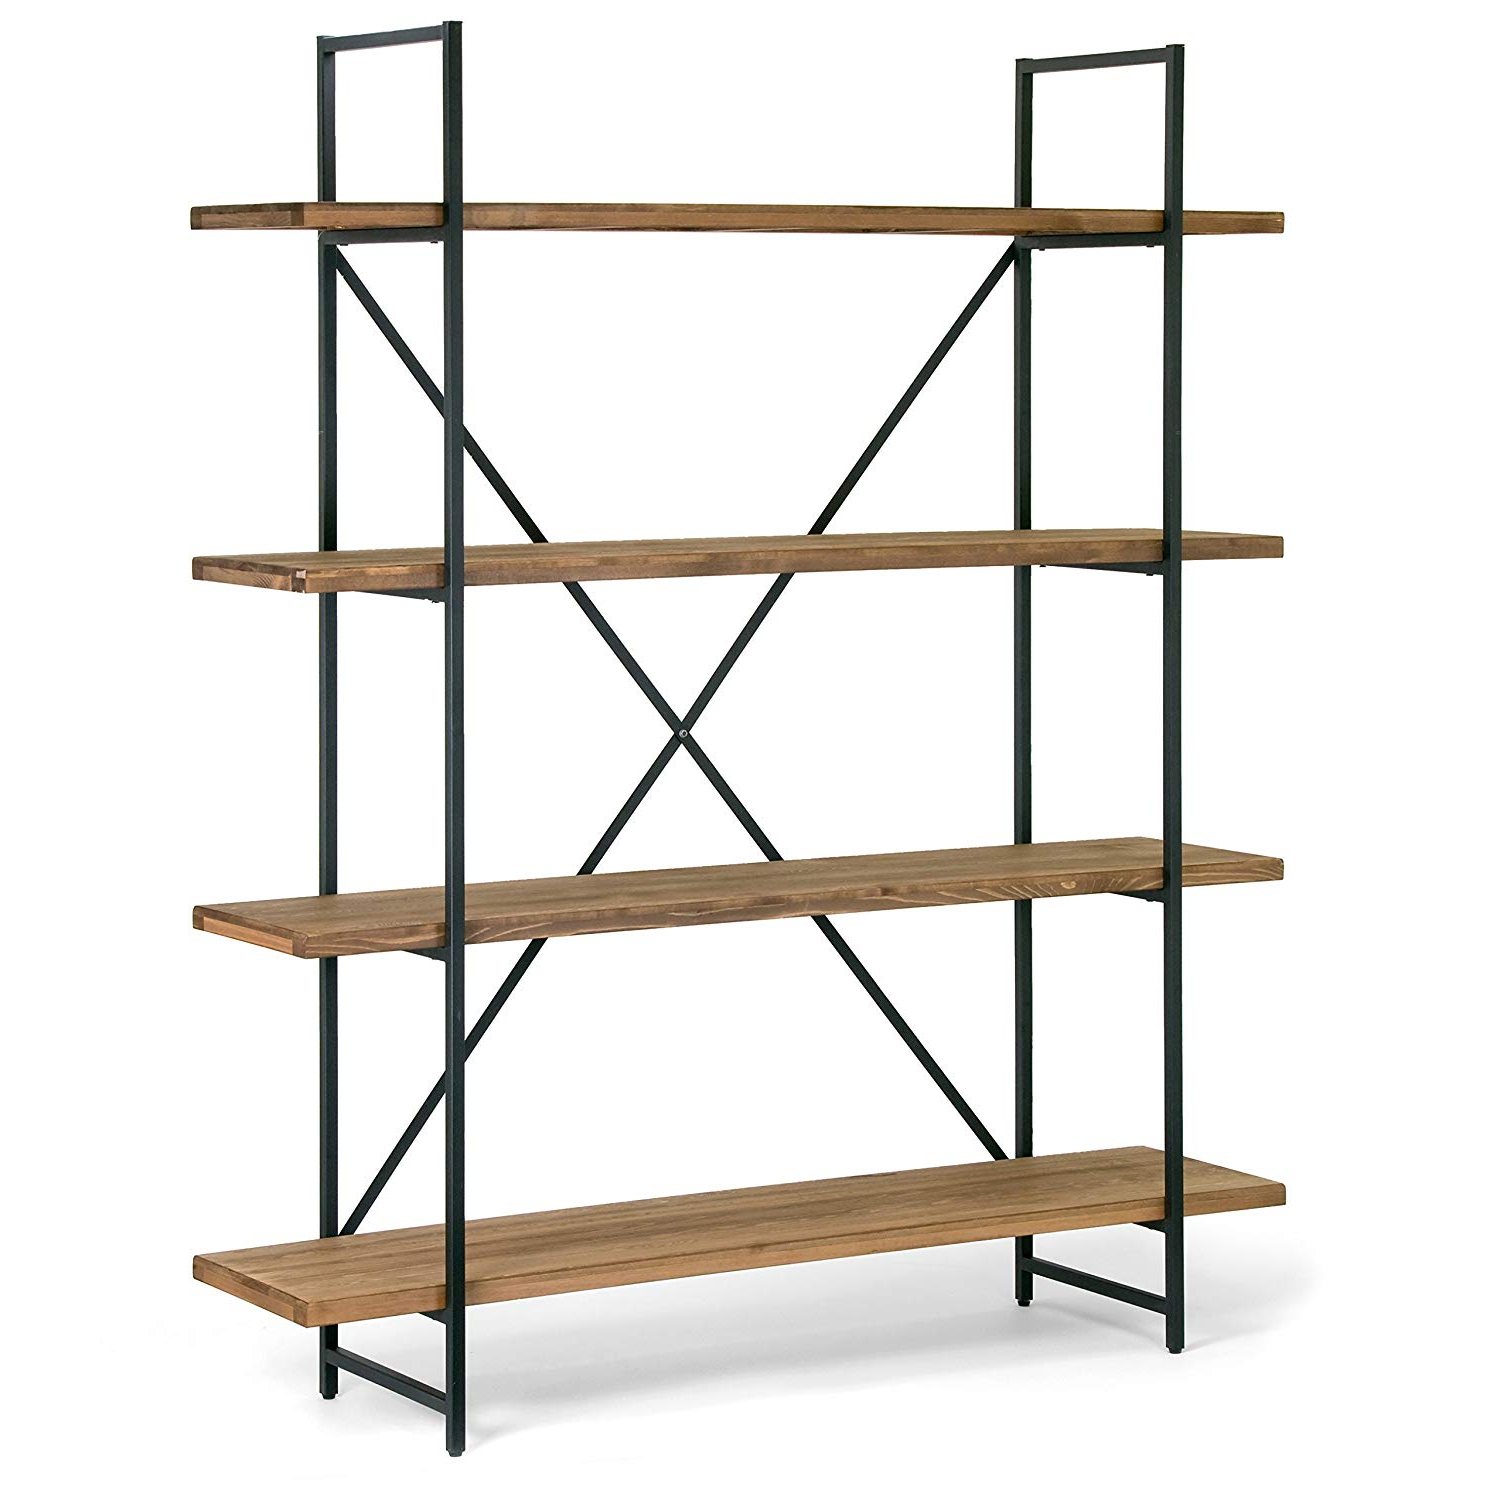 "Glamour Home Ailis 75"" Brown Pine Wood Metal Frame Etagere Bookcase Four Shelf Media Center Inside Latest Zona Etagere Cube Bookcases (View 13 of 20)"